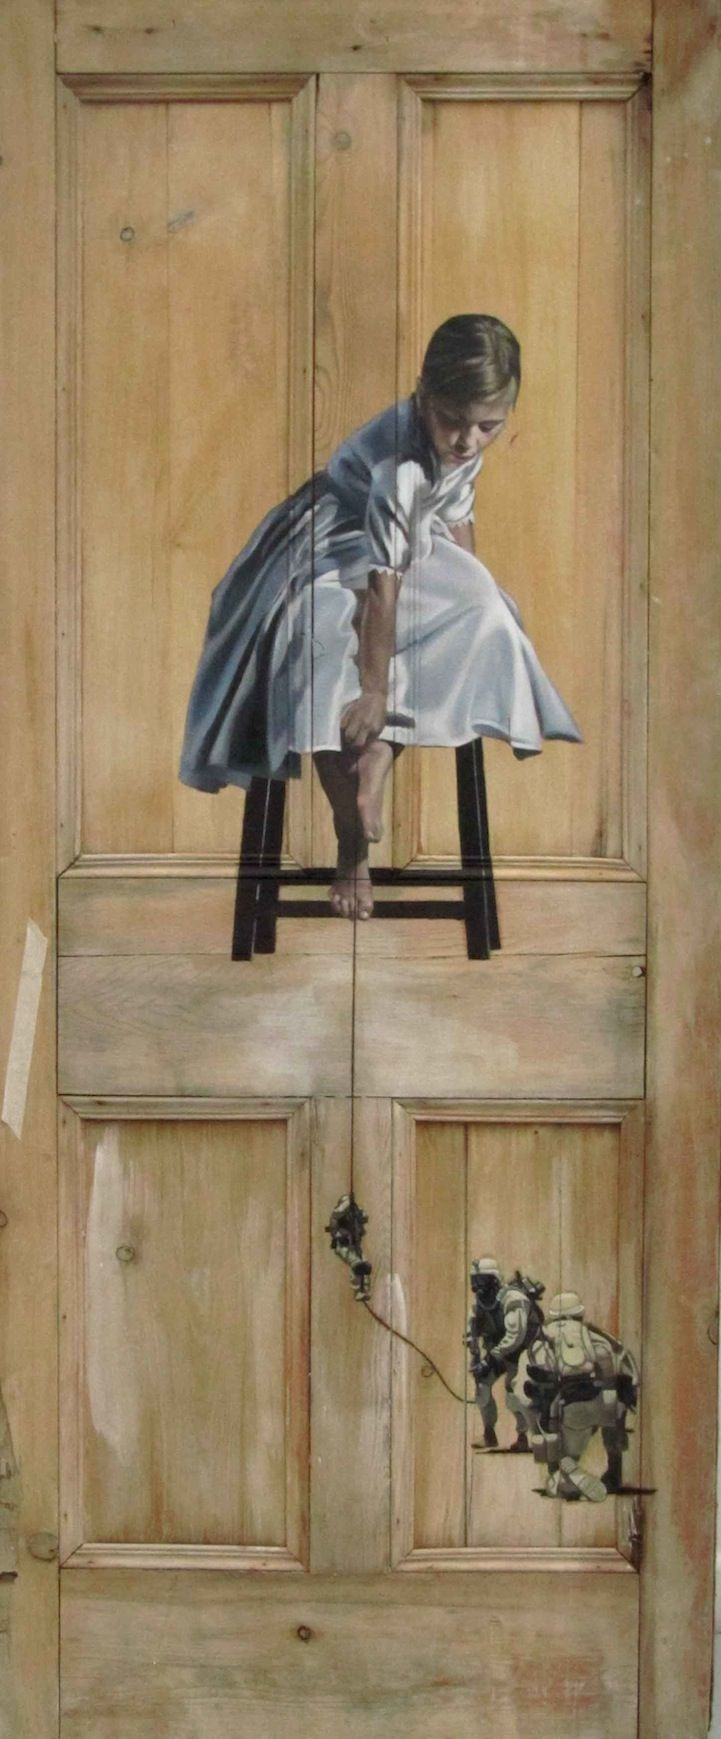 Intriguing Old Paintings on Worn Doors - My Modern Metropolis